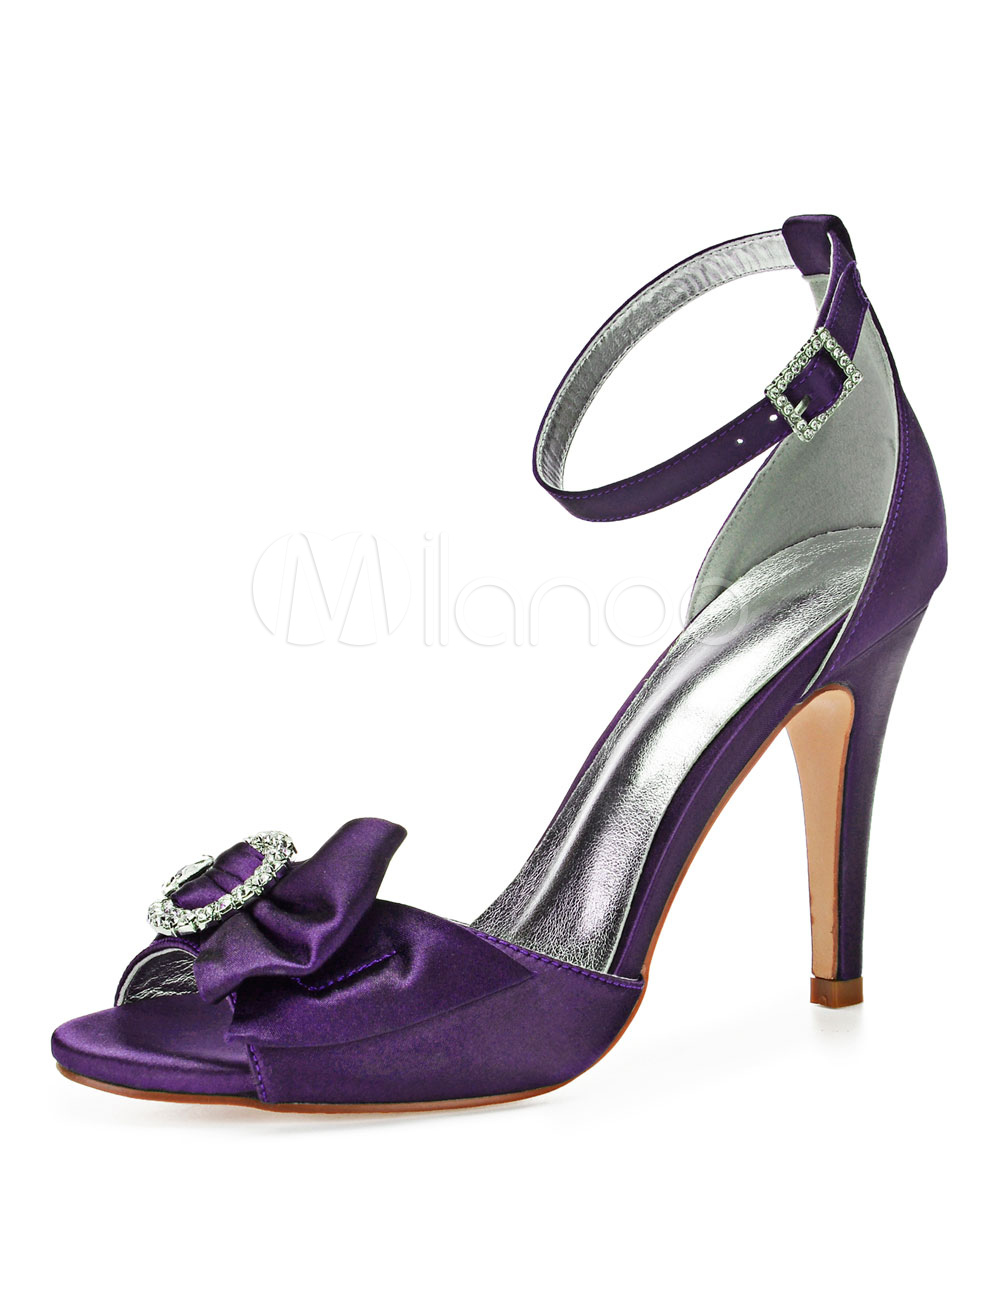 22c9c7998b3 ... Satin Peep Toe Bow Rhinestones Ankle Strap Bridal Shoes High Heel  Mother Shoes. 1234. 40%OFF. Color deep purple